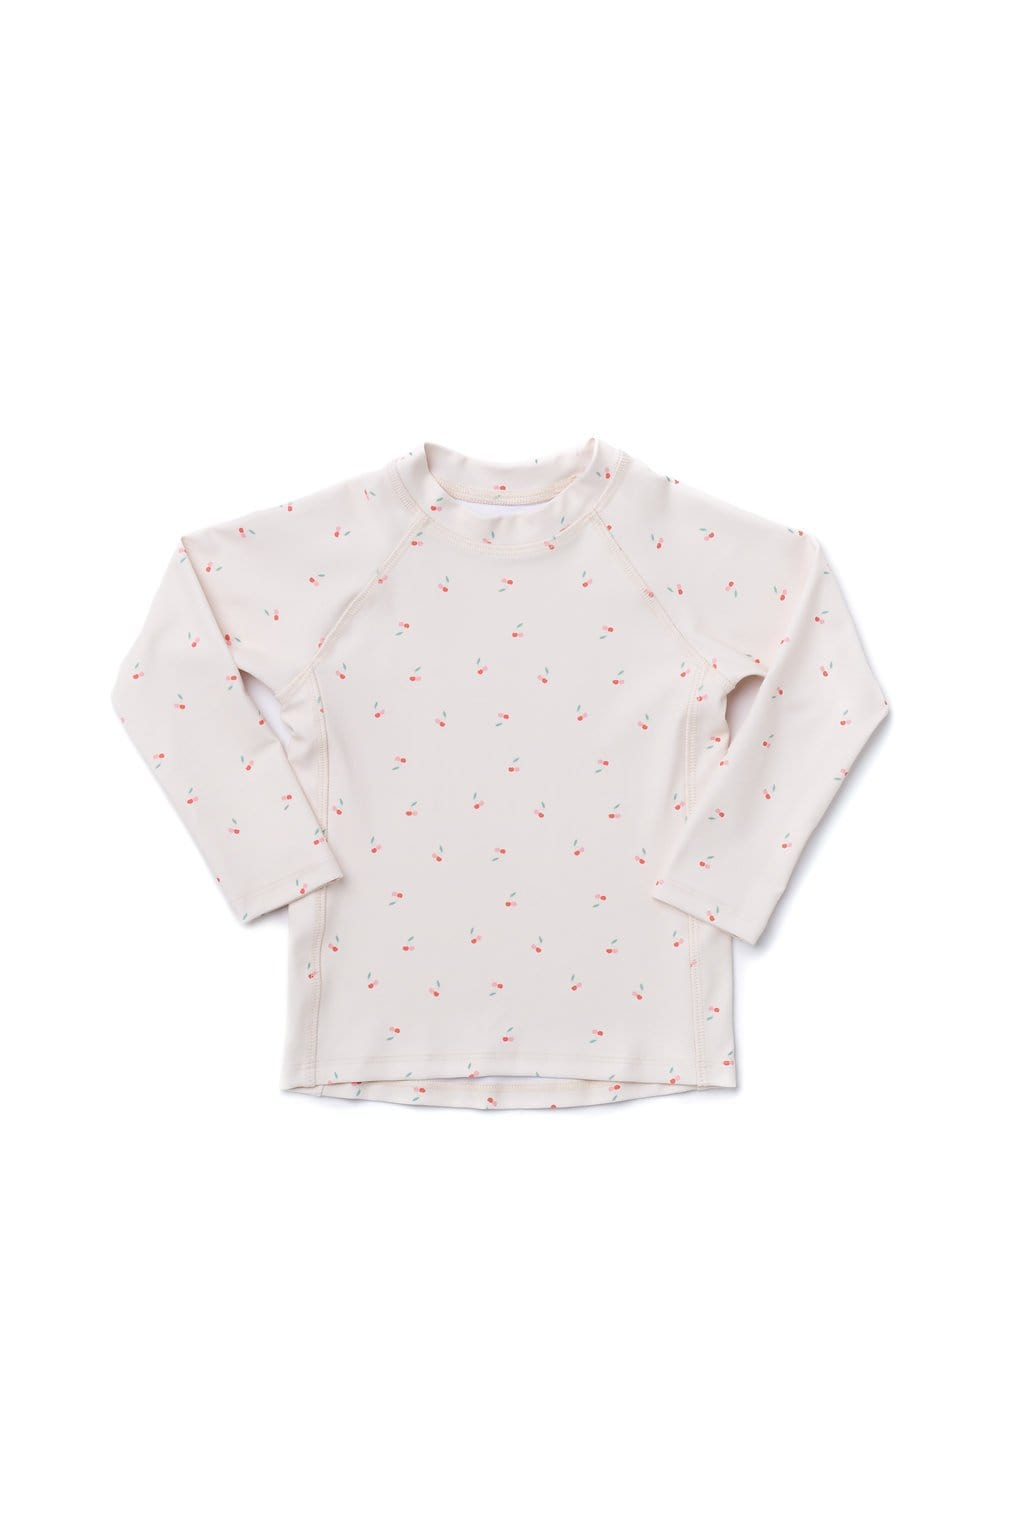 Hermosa Rash Guard Ditsy Cherry - Olivia + Ocean